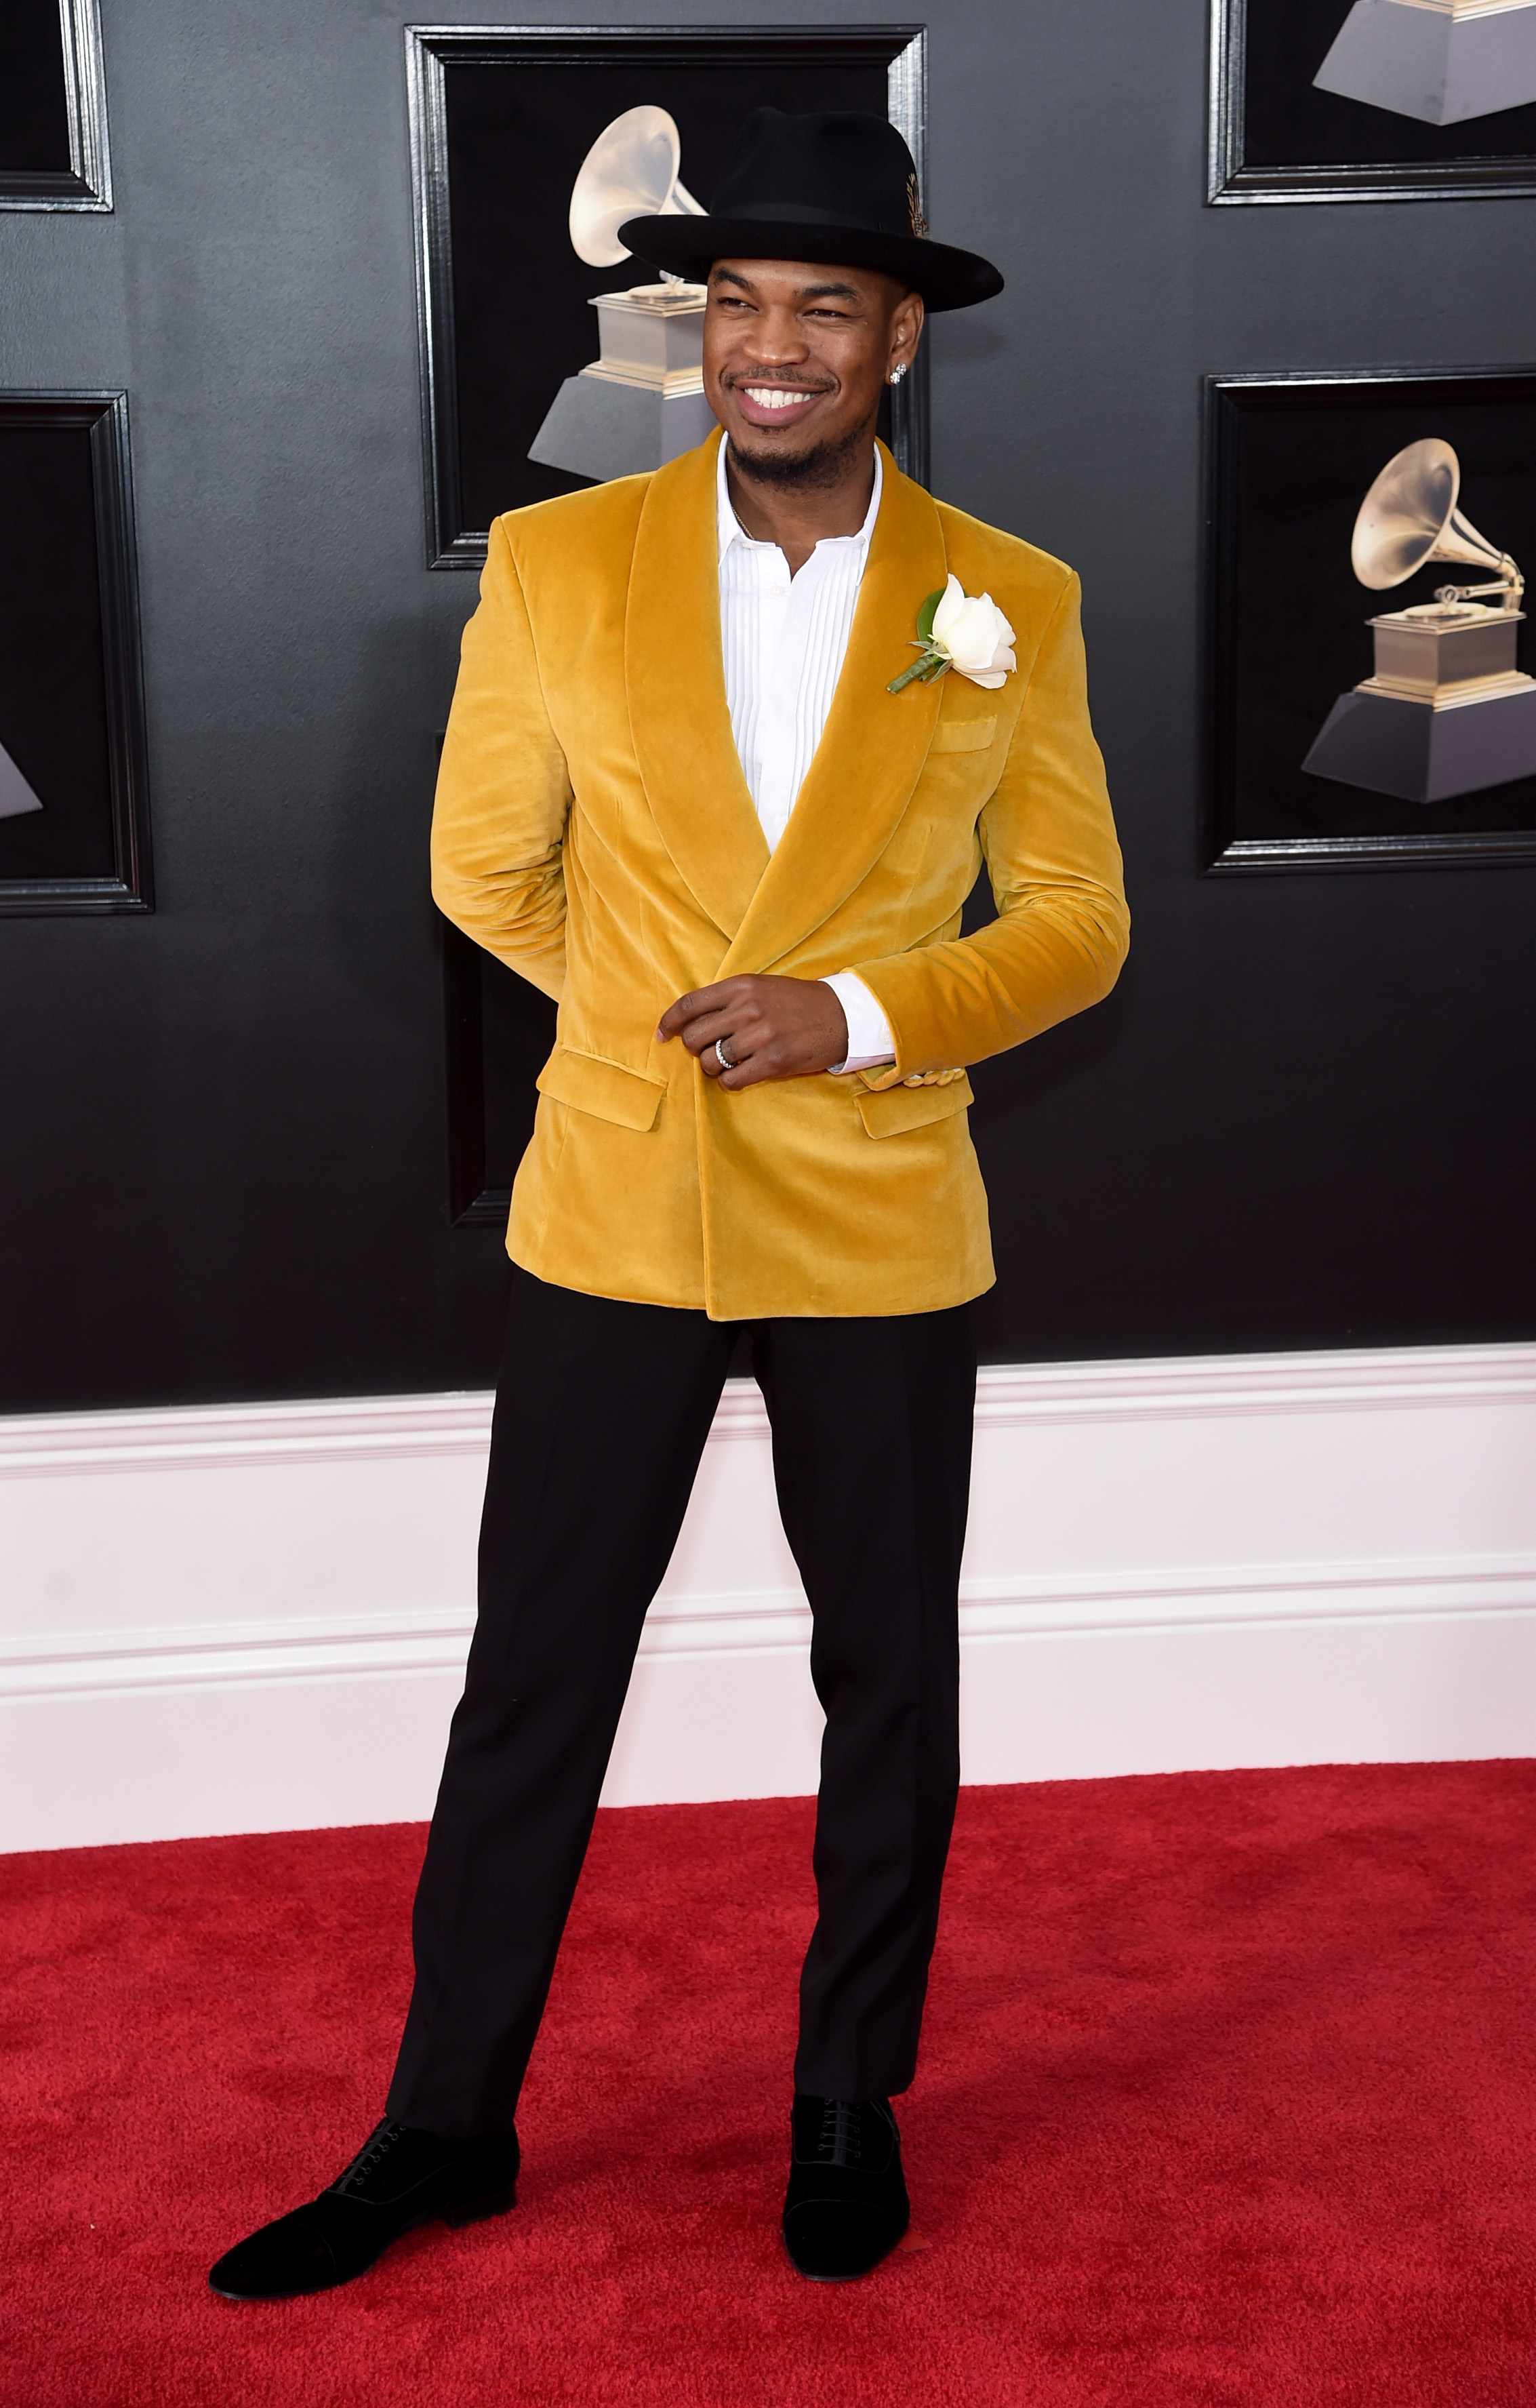 Ne-Yo at the 2018 Grammys